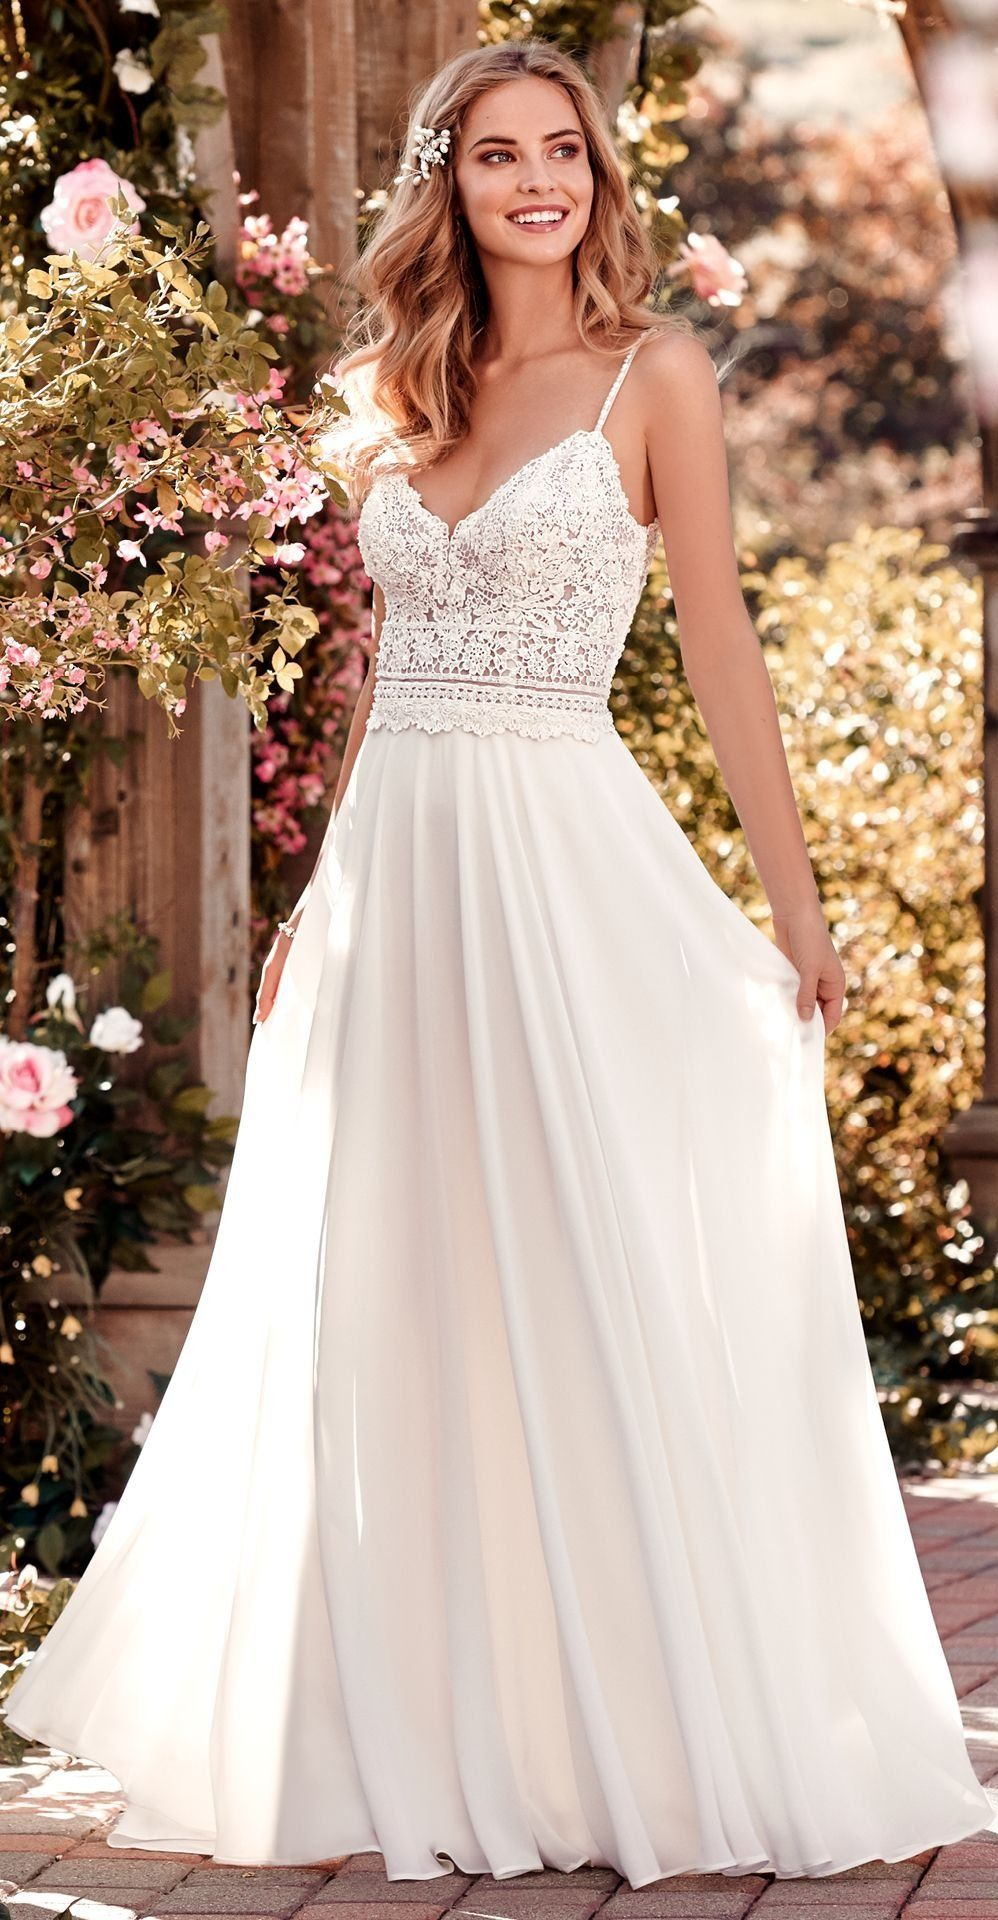 bfb1bf1931d0a Rebecca Ingram - JUNIPER, This chiffon boho-inspired wedding dress features  a sheer bodice accented in beaded lace.